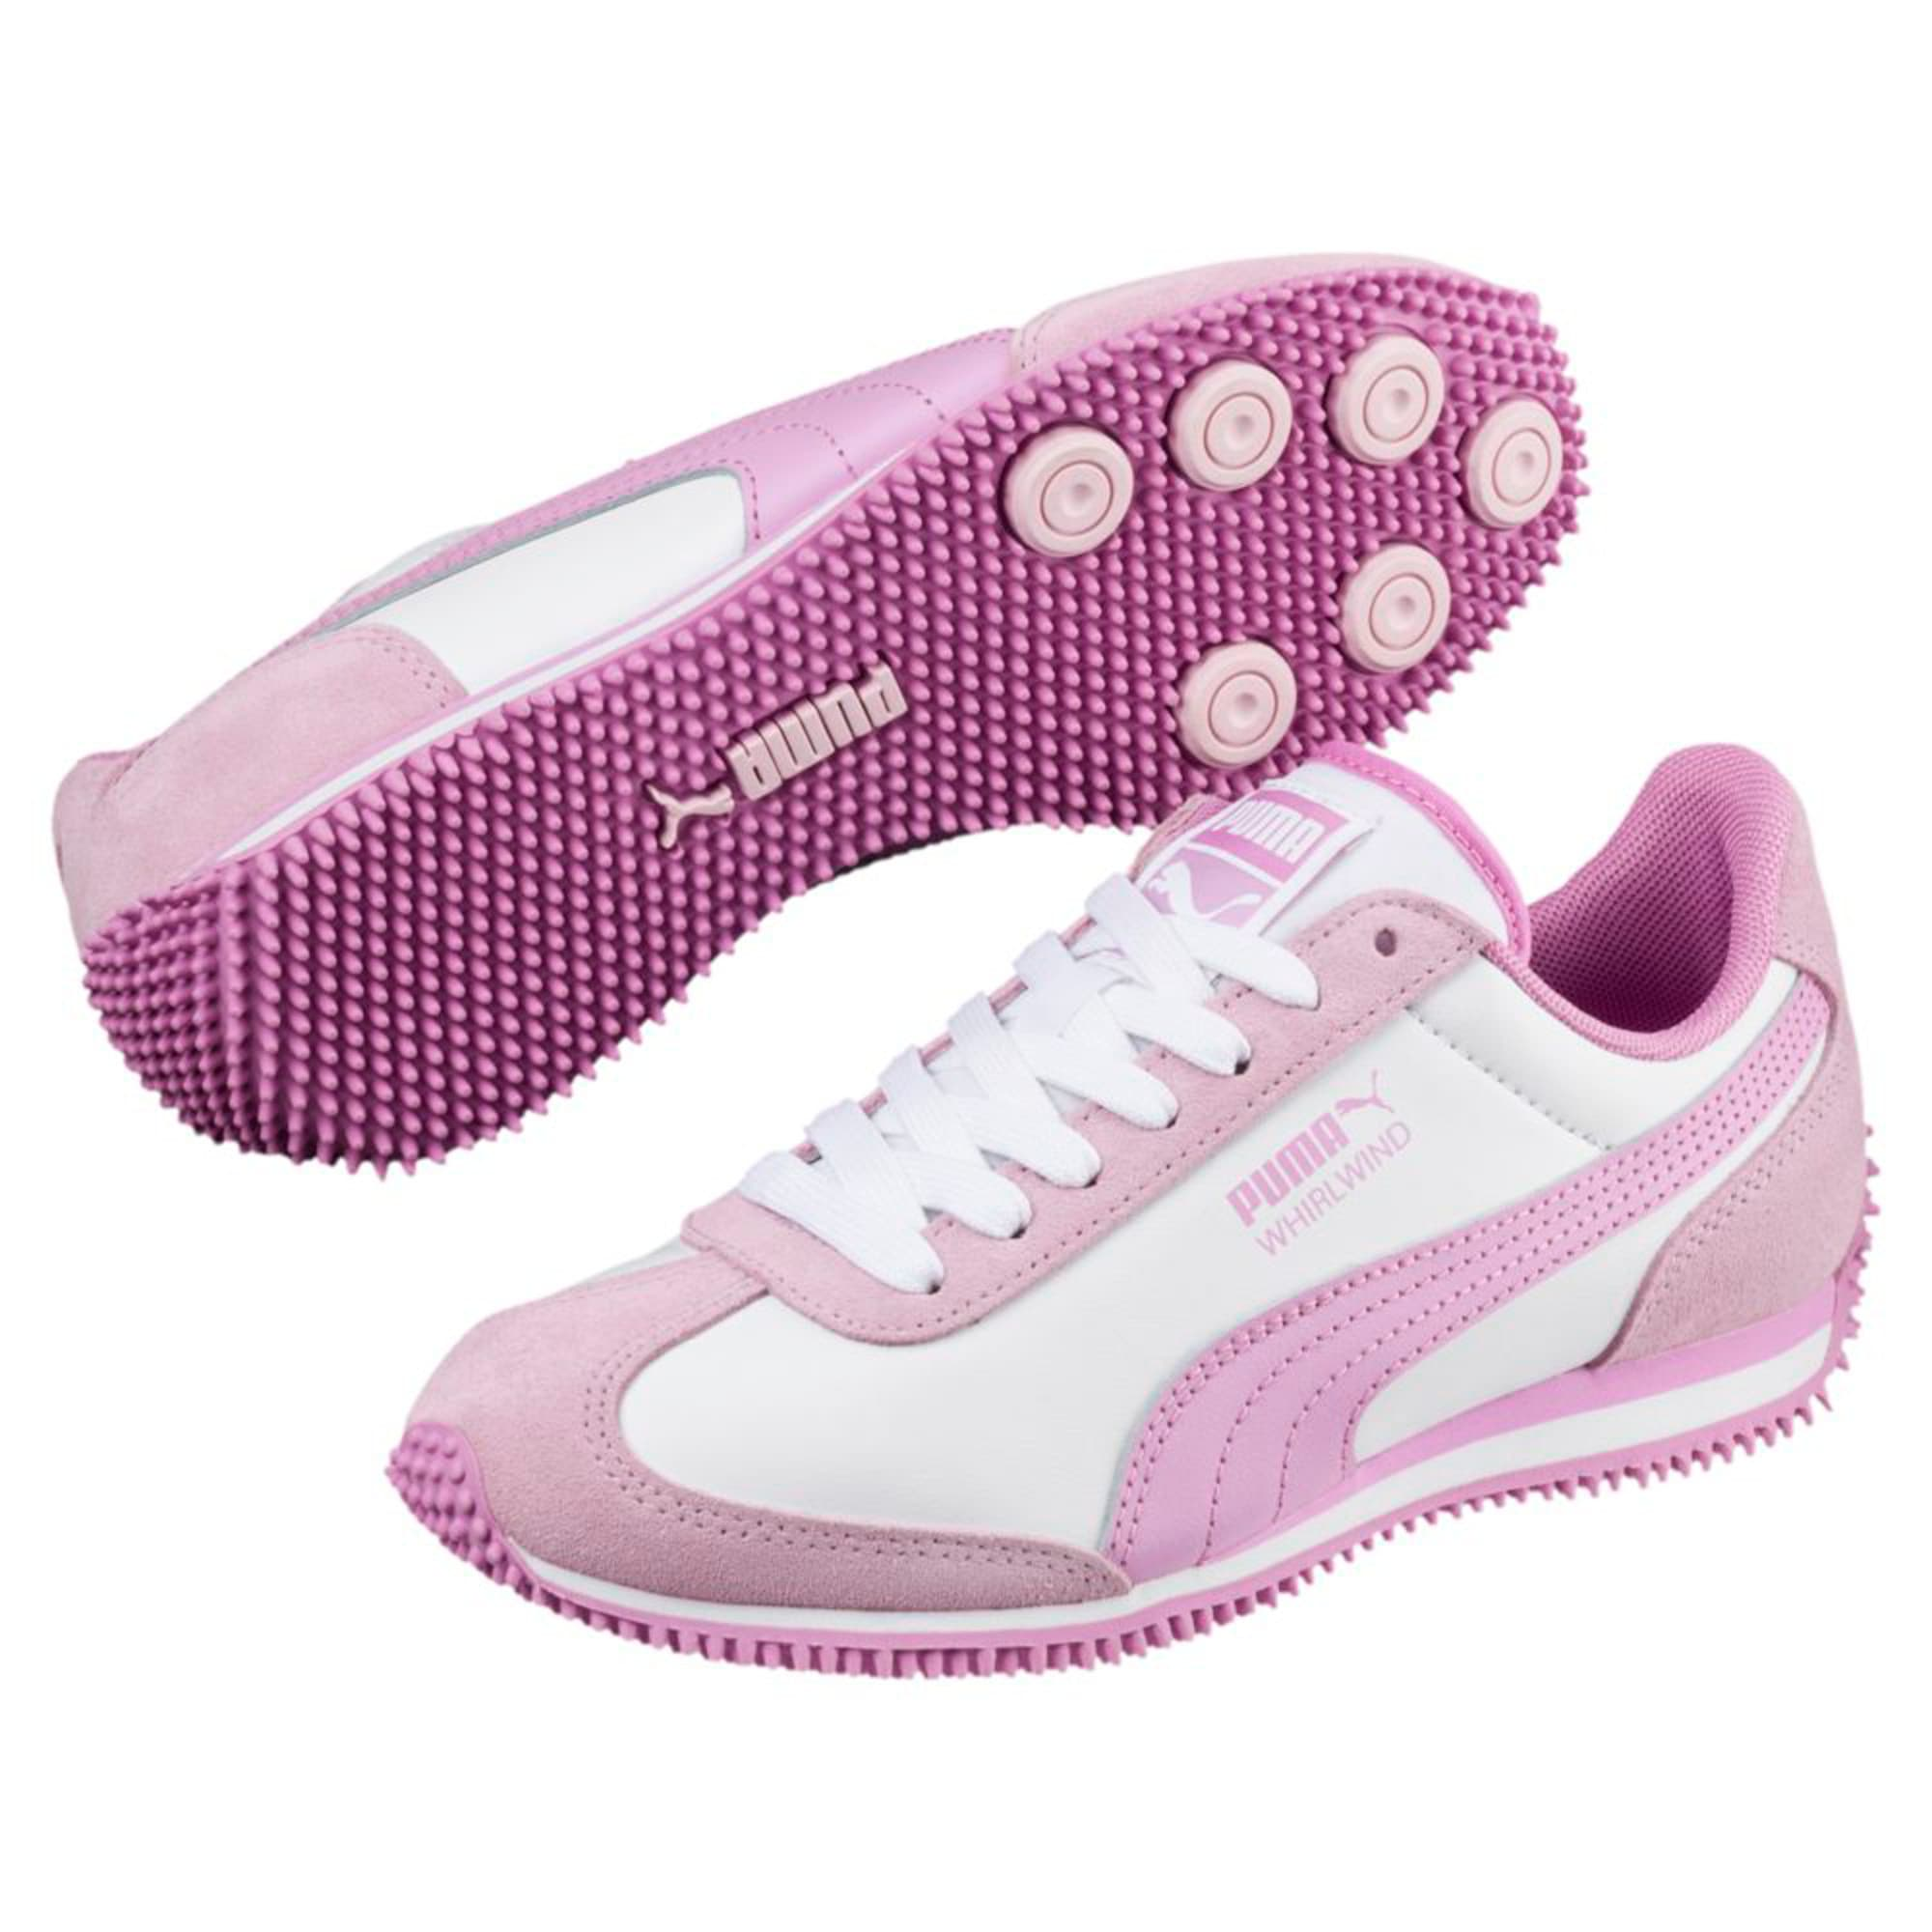 Thumbnail 6 of Kid's Whirlwind Trainers, Puma White-Winsome Orchid, medium-IND